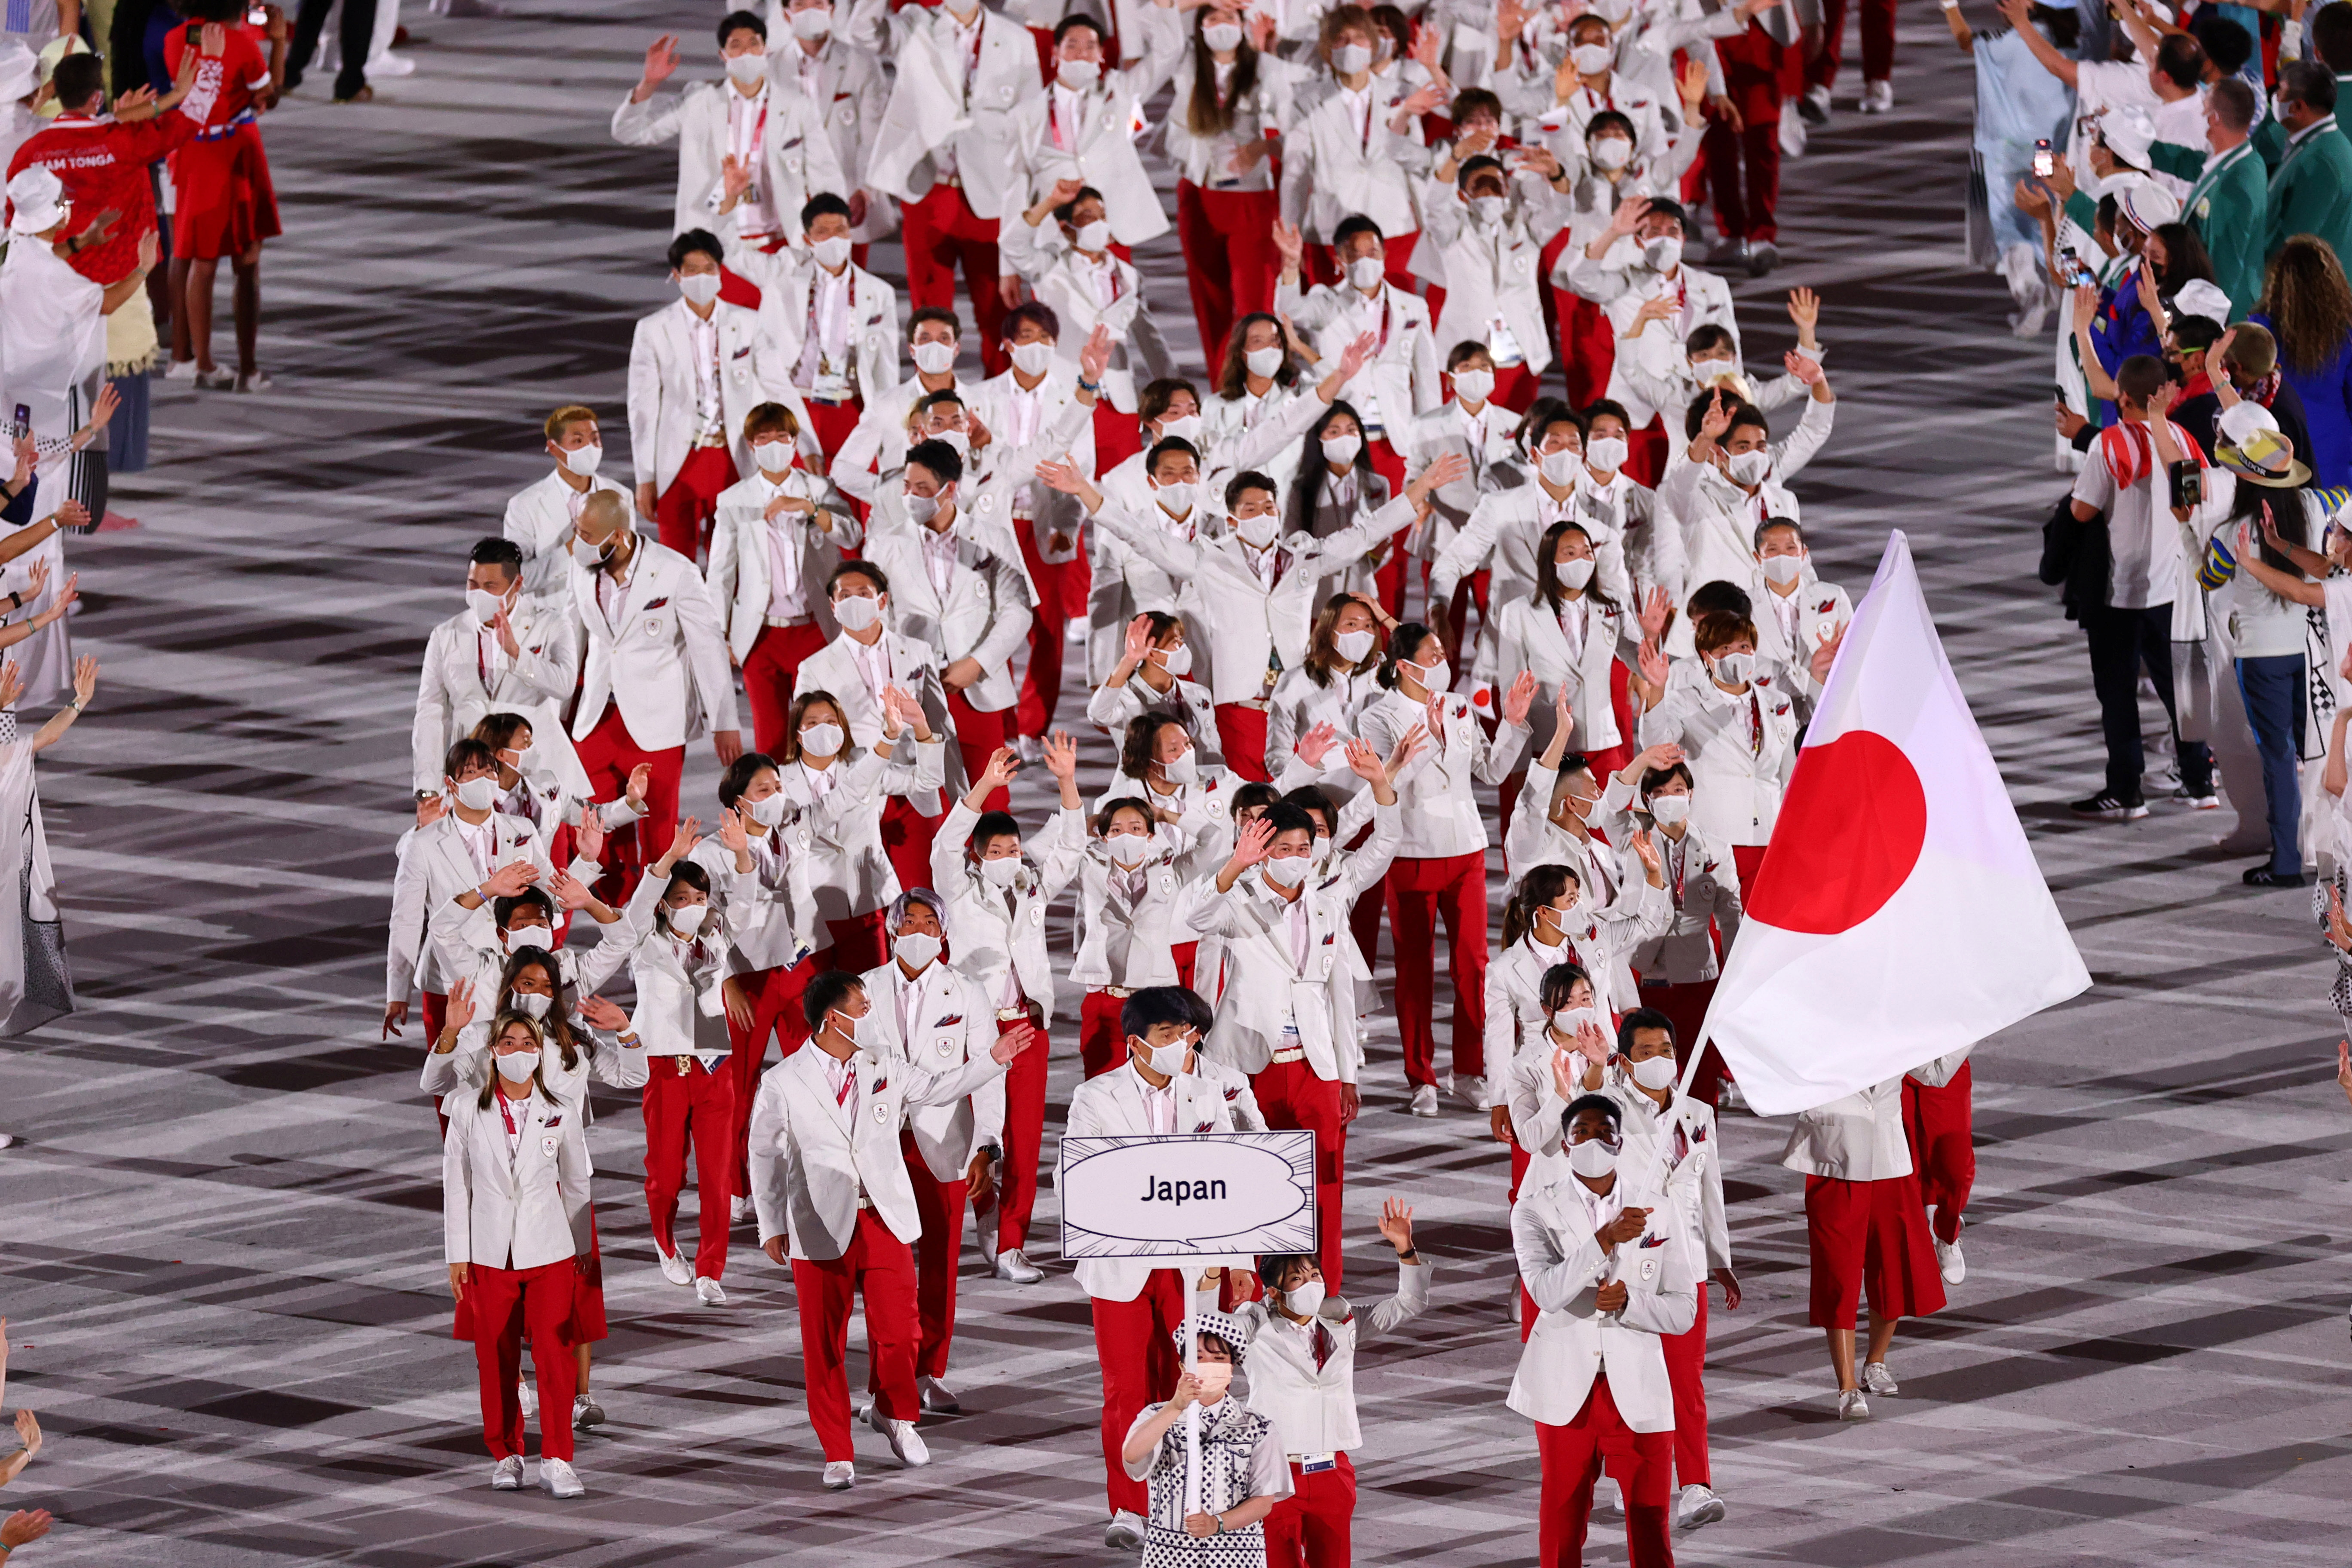 Tokyo 2020 Olympics - The Tokyo 2020 Olympics Opening Ceremony - Olympic Stadium, Tokyo, Japan - July 23, 2021. Flag bearers Yui Susaki of Japan and Rui Hachimura of Japan lead their contingent during the athletes parade at the opening ceremony REUTERS/Mike Blake/File Photo